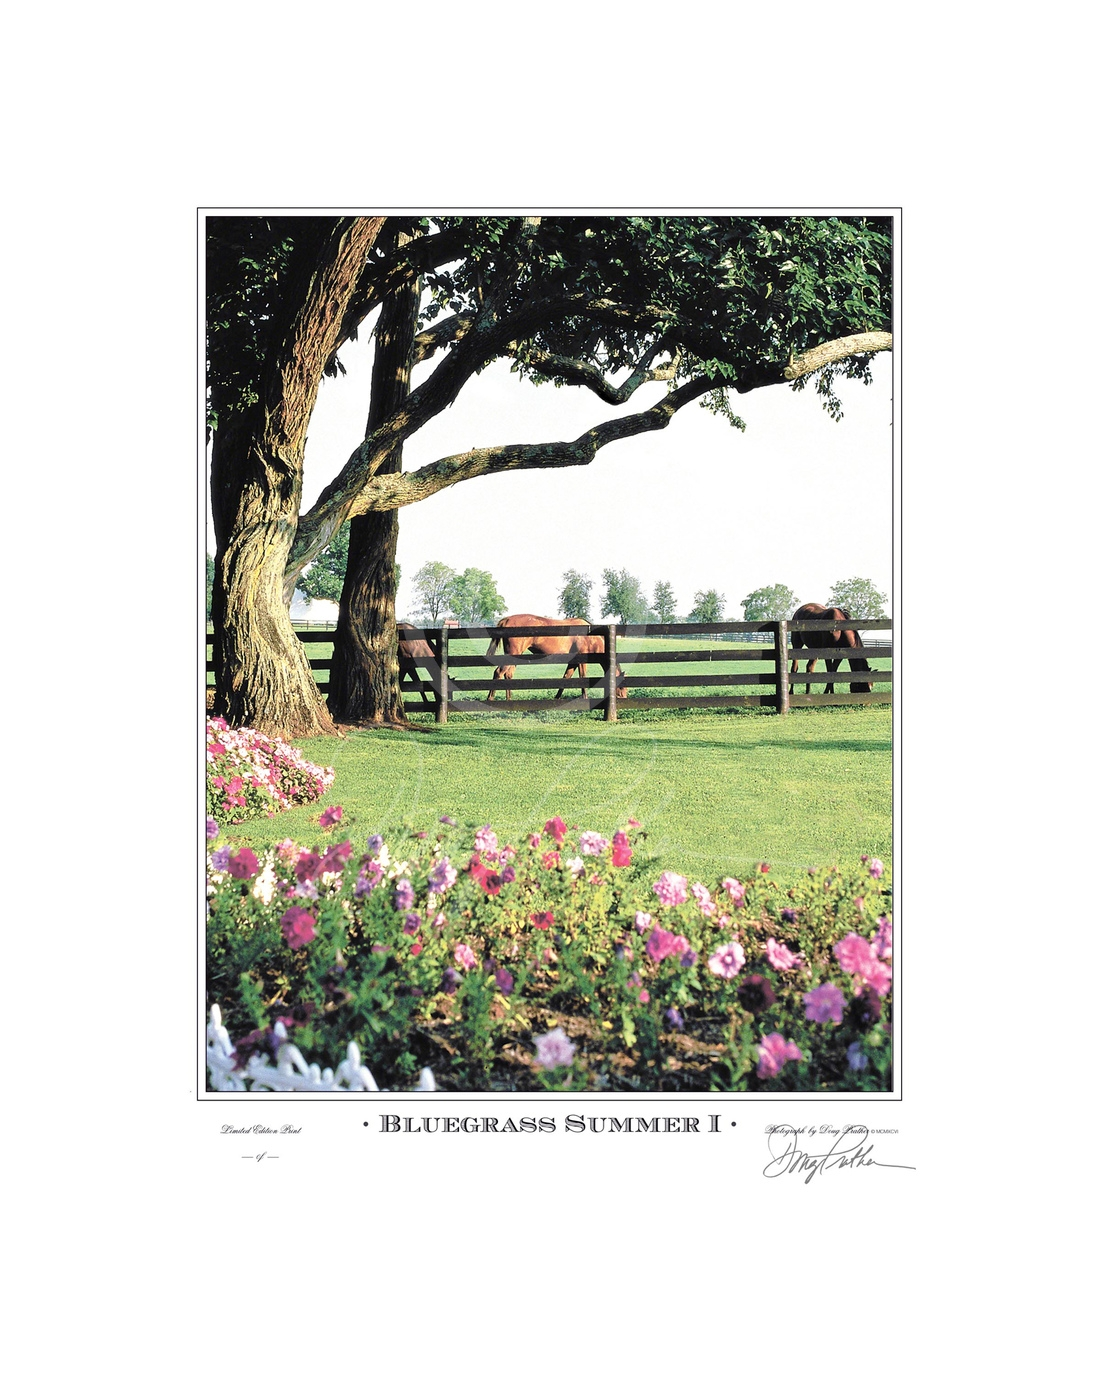 Bluegrass Summer I, a fine art horse print. A lush scene intertwining summer flowers, horses, trees and fences into a beautiful pastoral scene on Green Gates Farm, Ironworks Pike, Lexington, Ky. This was also the former Spendthrift and Elmendorf Farms. Ph